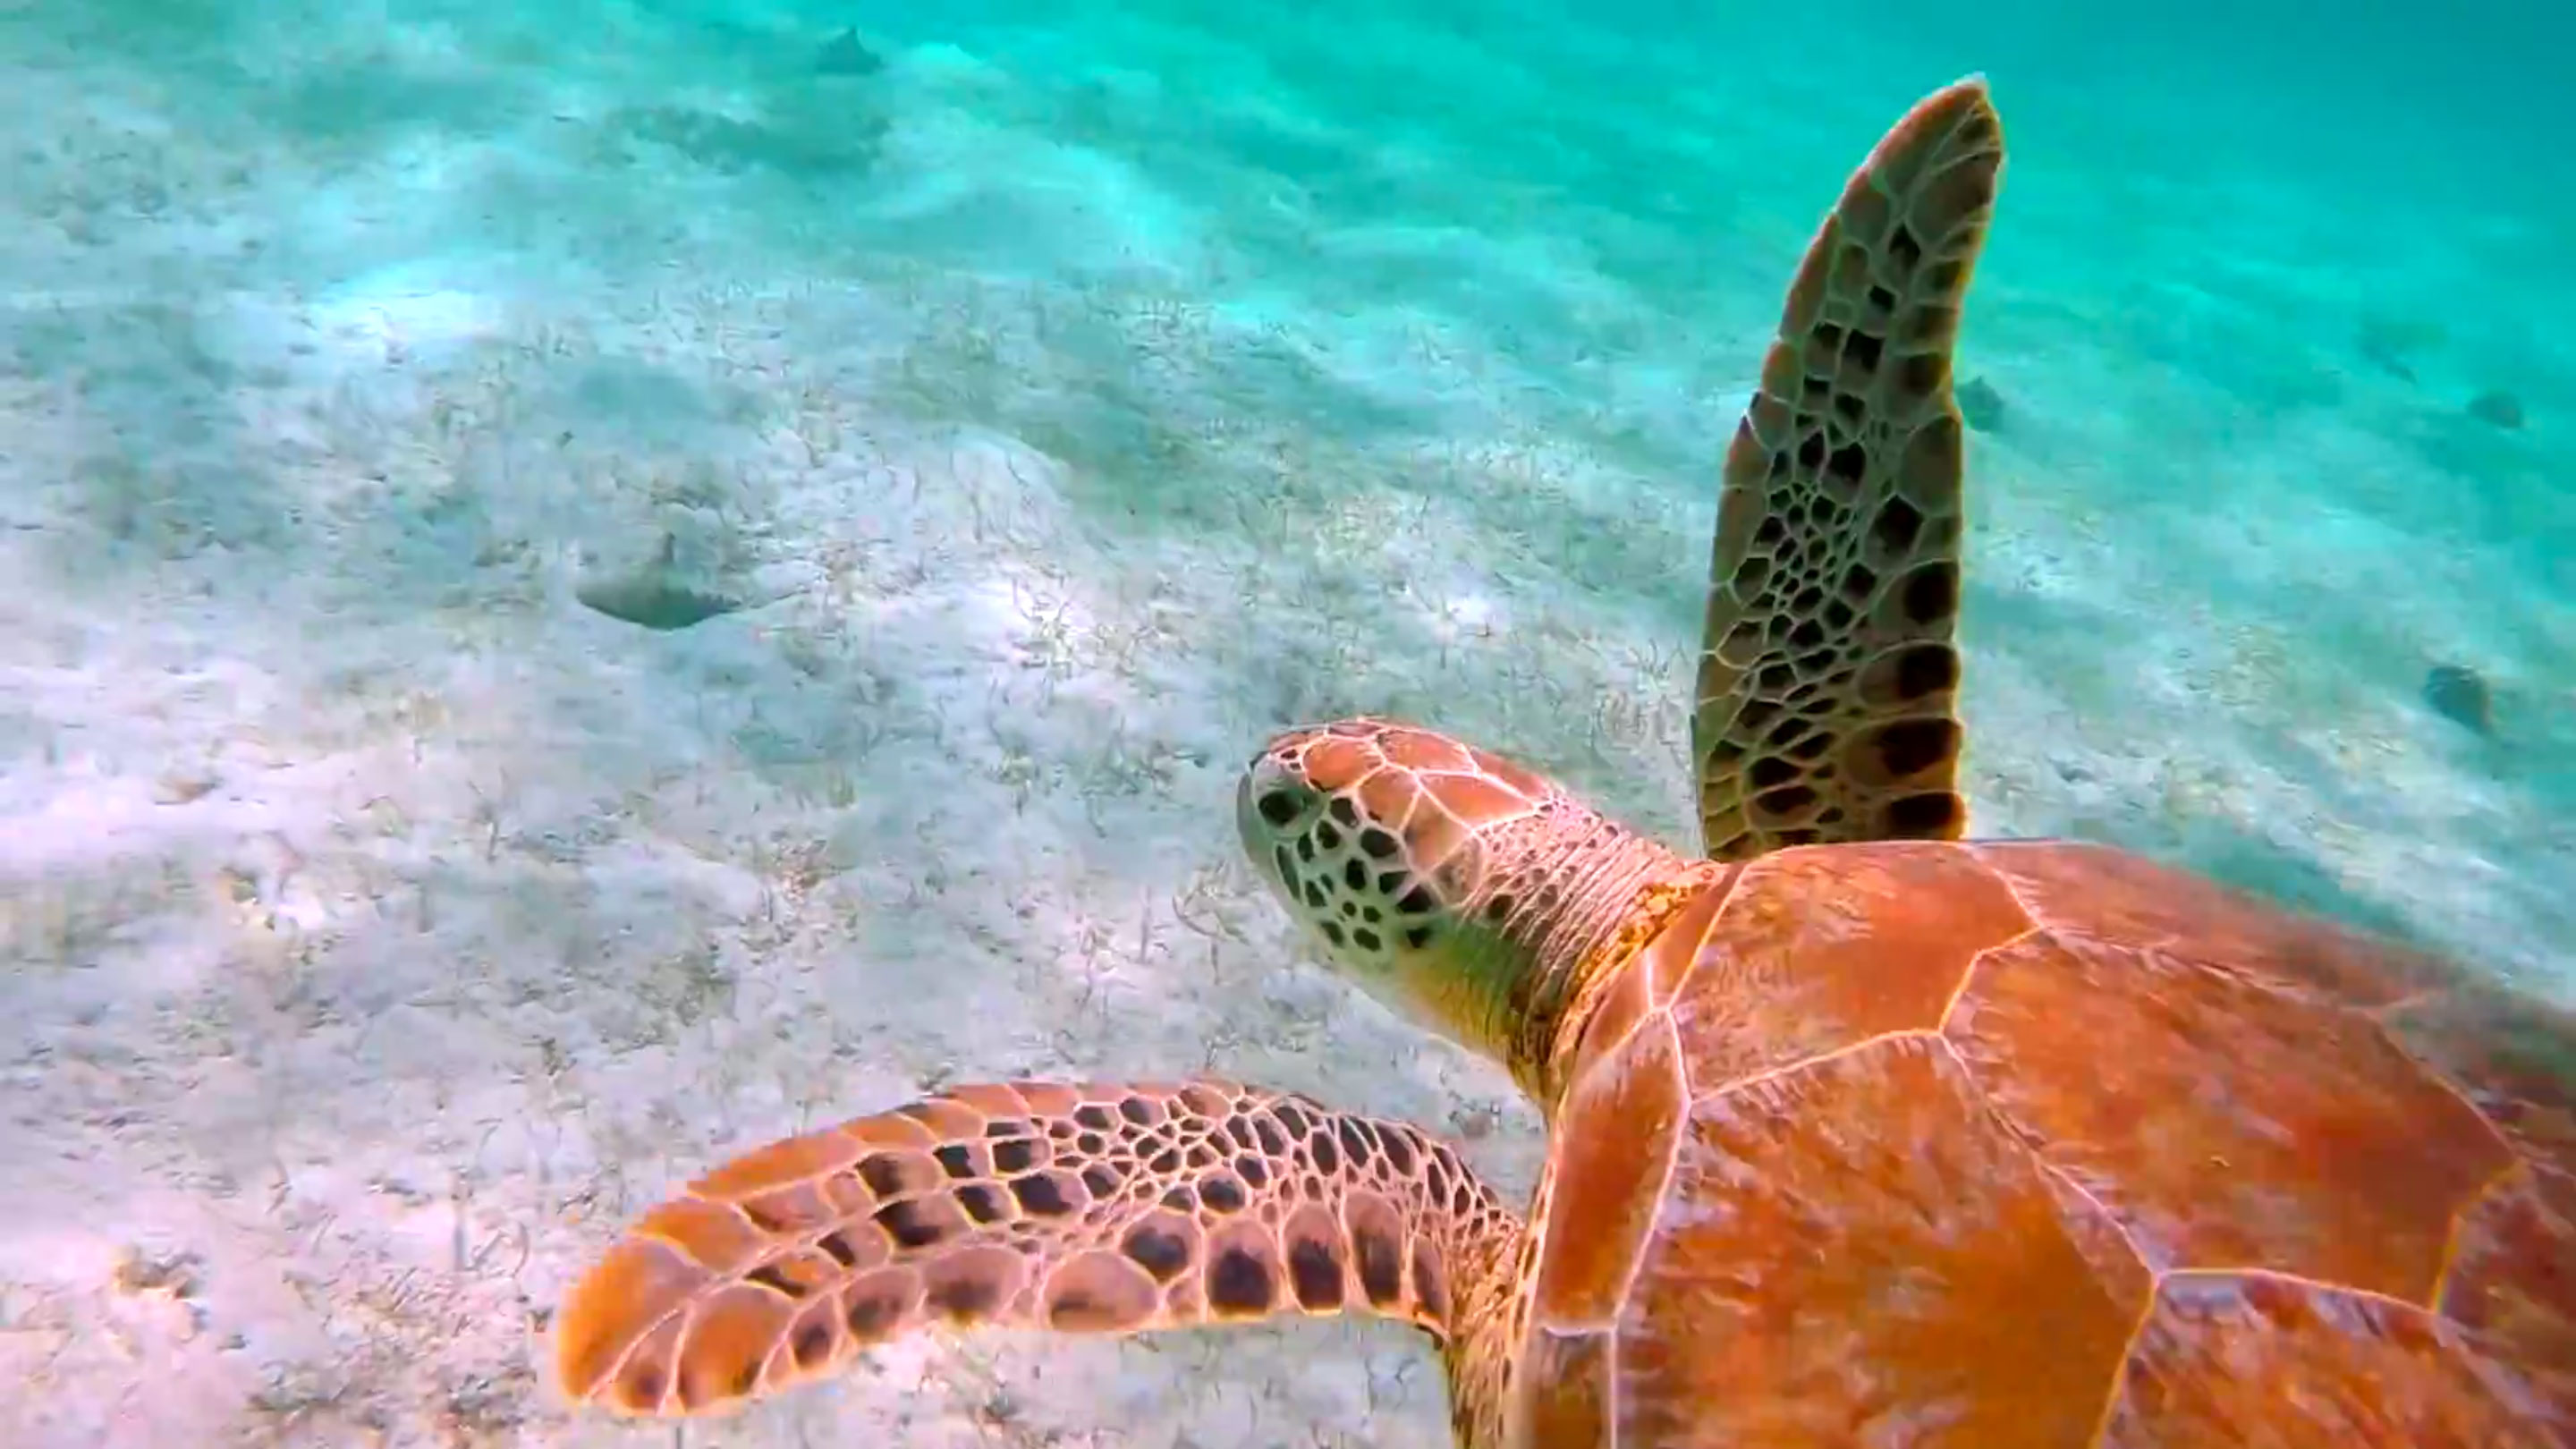 Saturday Video Snorkeling With Turtles In The Trippy